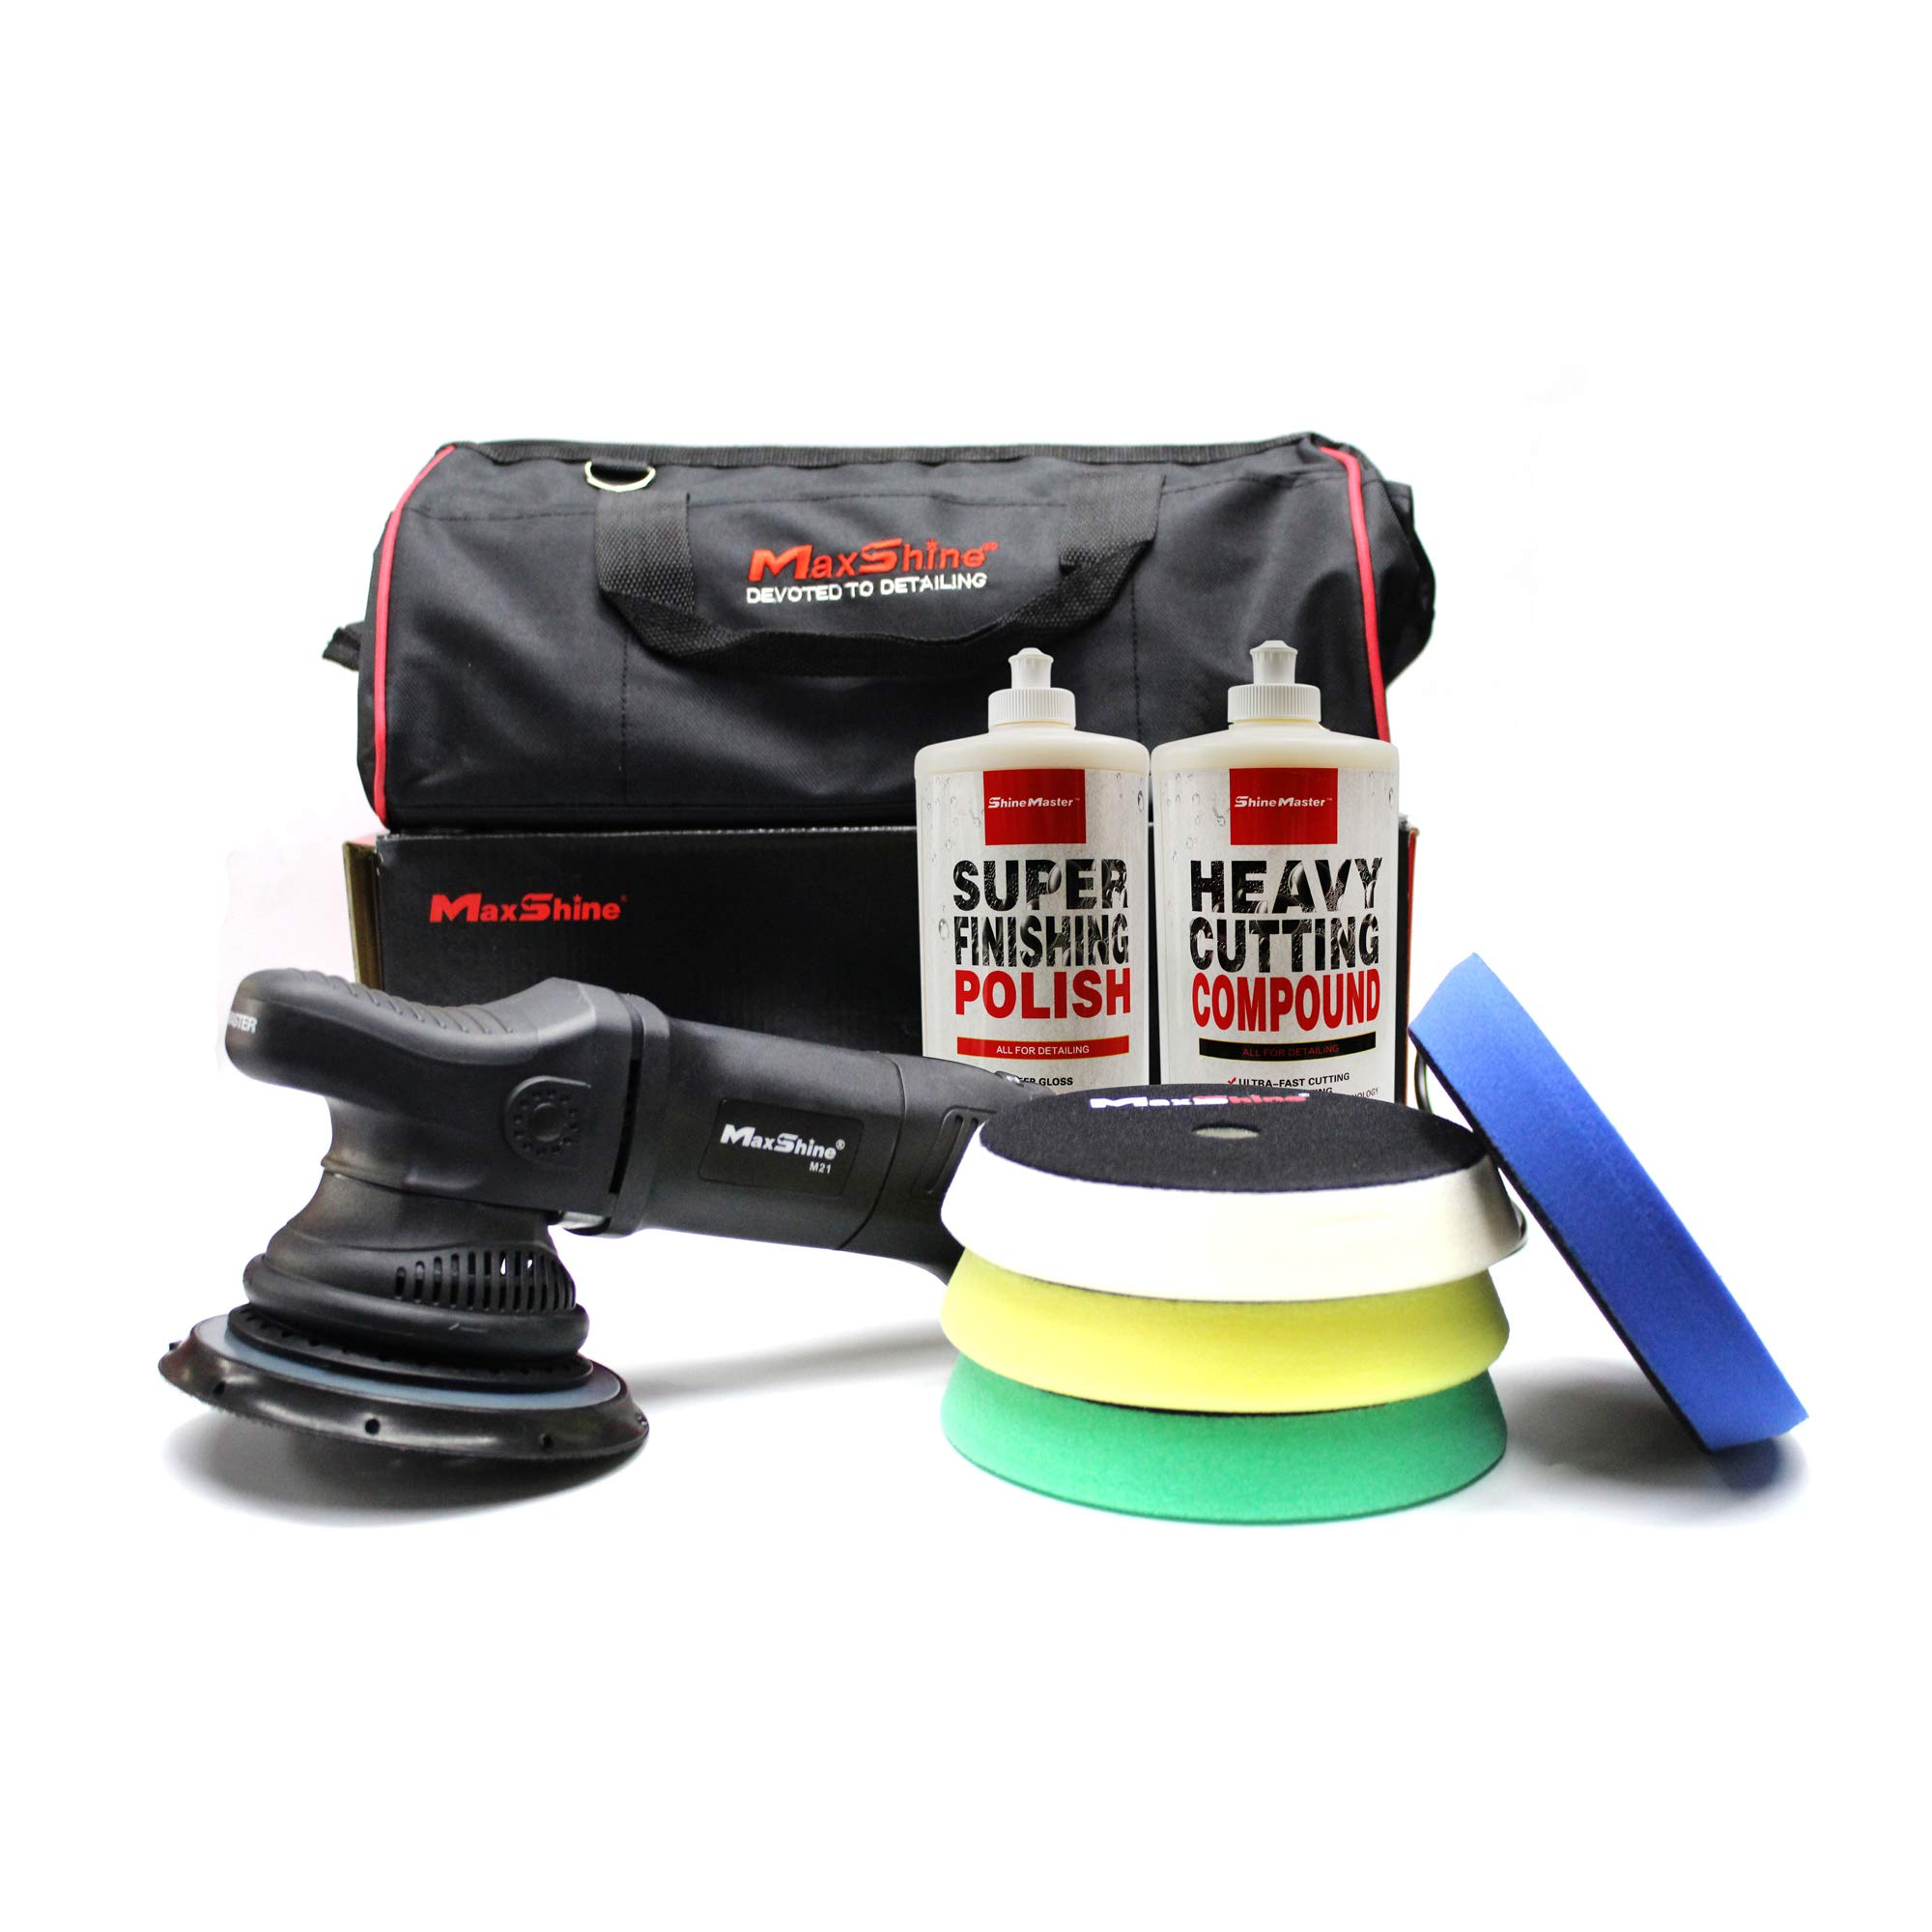 Maxshine ShineMaster M21 DA/Dual Action Polisher Kit 2